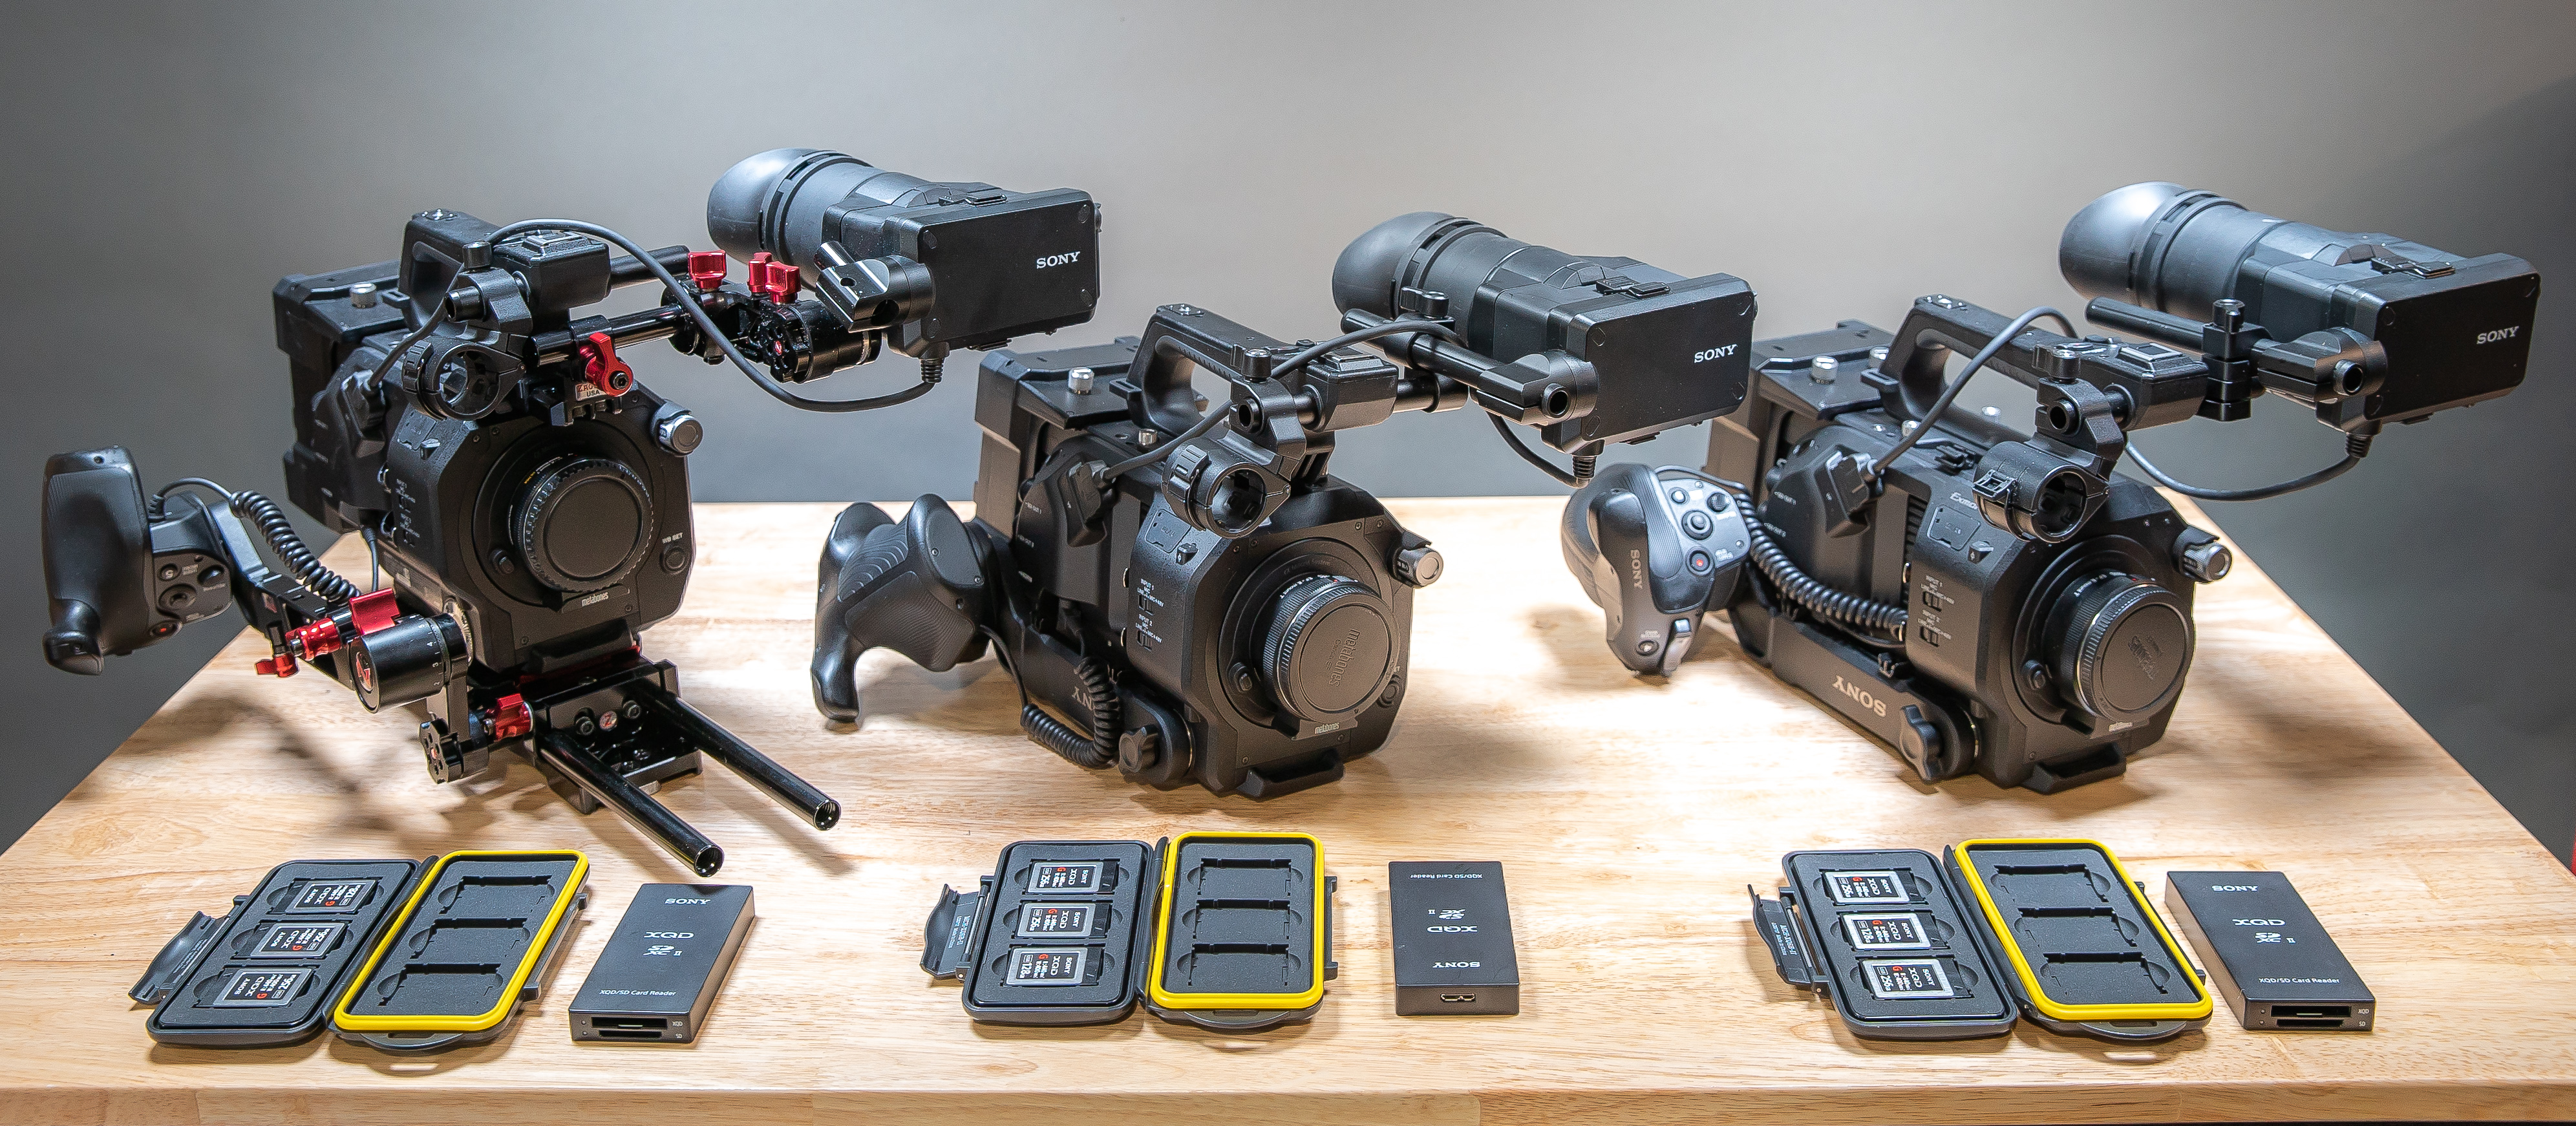 Our 3 FS7 Package